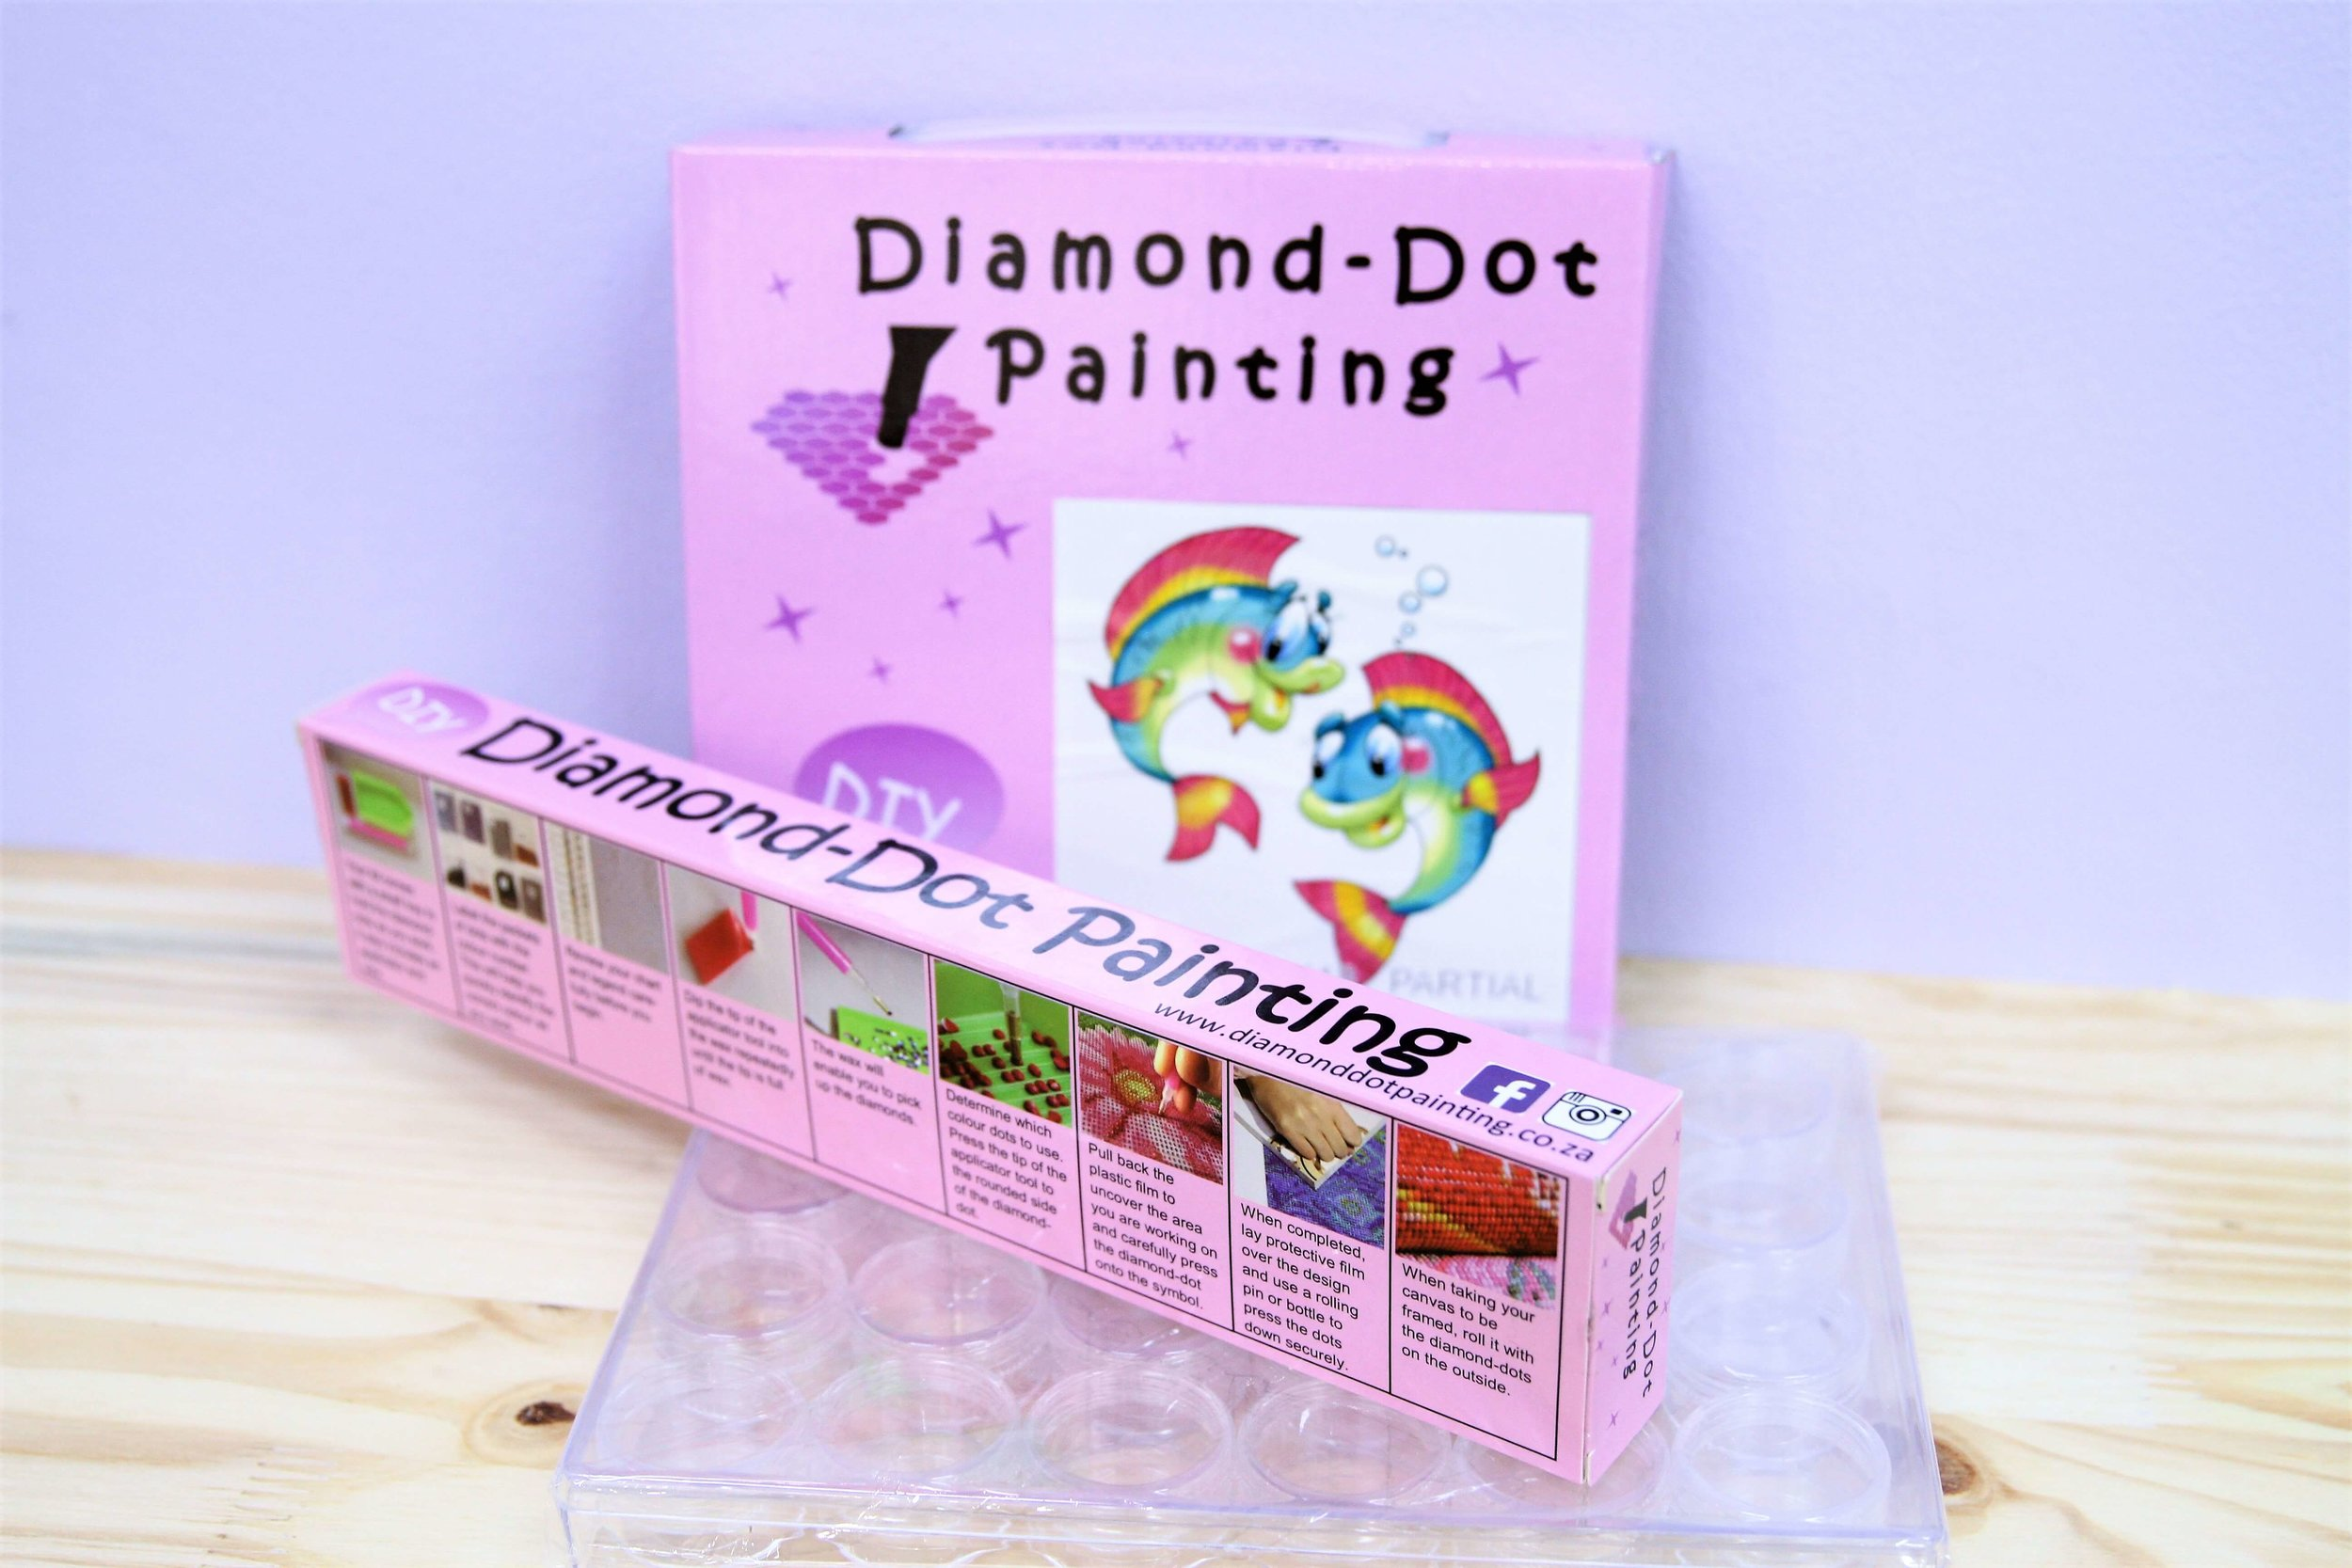 Diamond Dot Painting - Diamond-Dot Painting is an awesome new DIY craft involving the completion of beautiful designs using small, faceted beads. View our gallery for the current designs available.